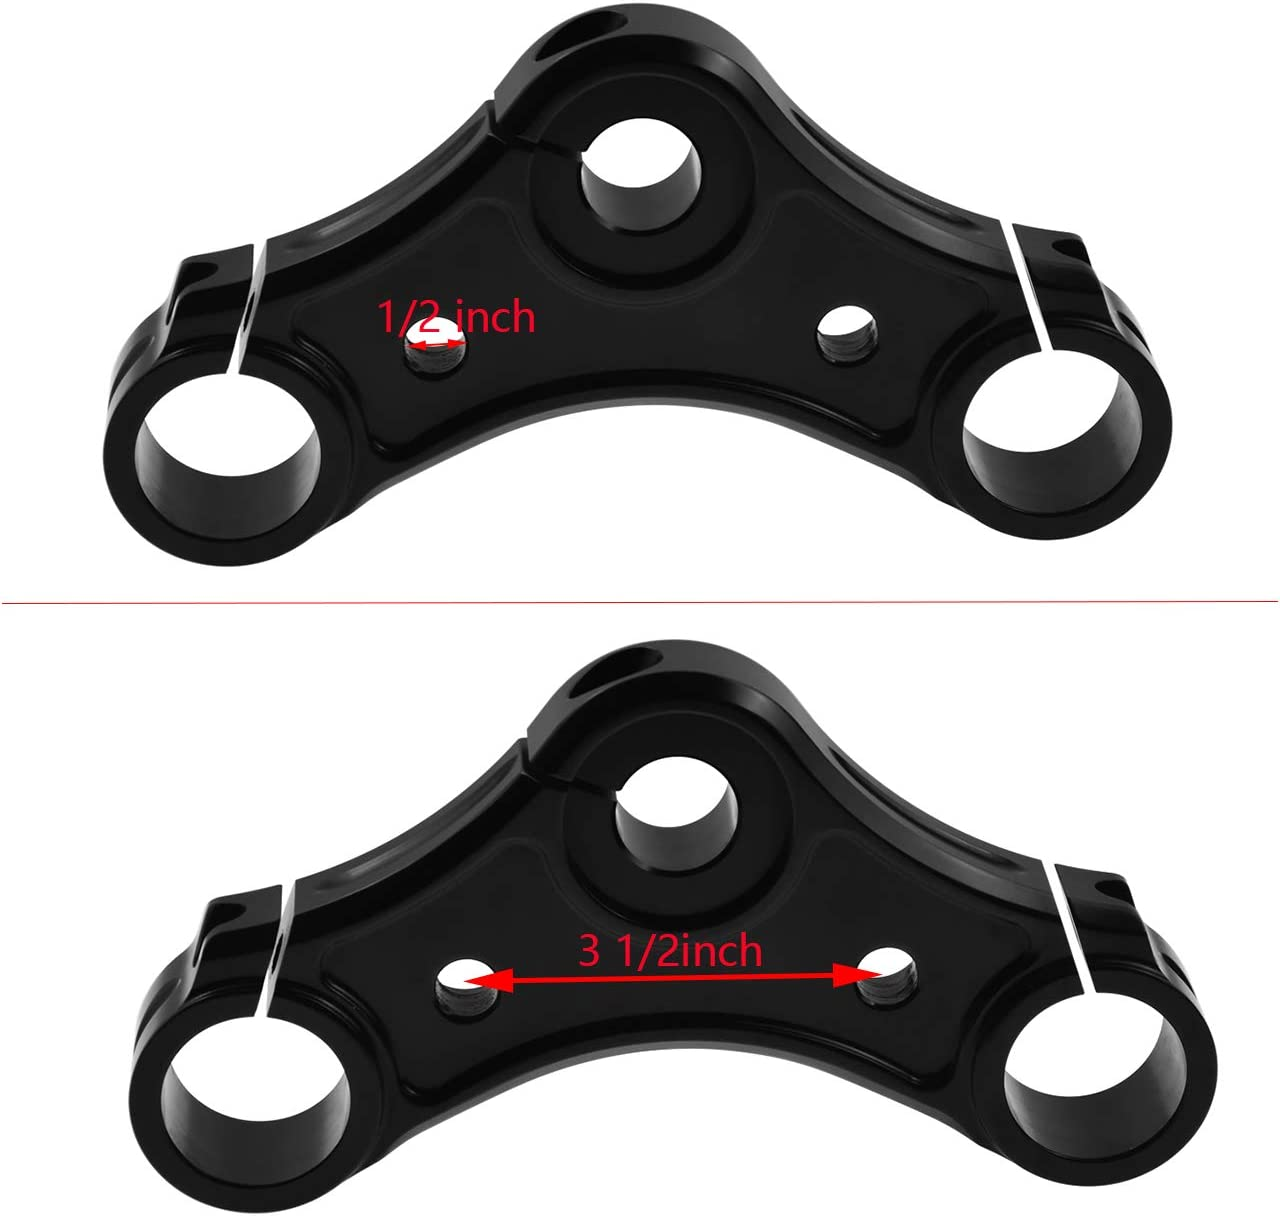 Rebacker Motorcycle Top Triple Clamp with Riser Holes for Harley Sportster XL 883 2004-2017